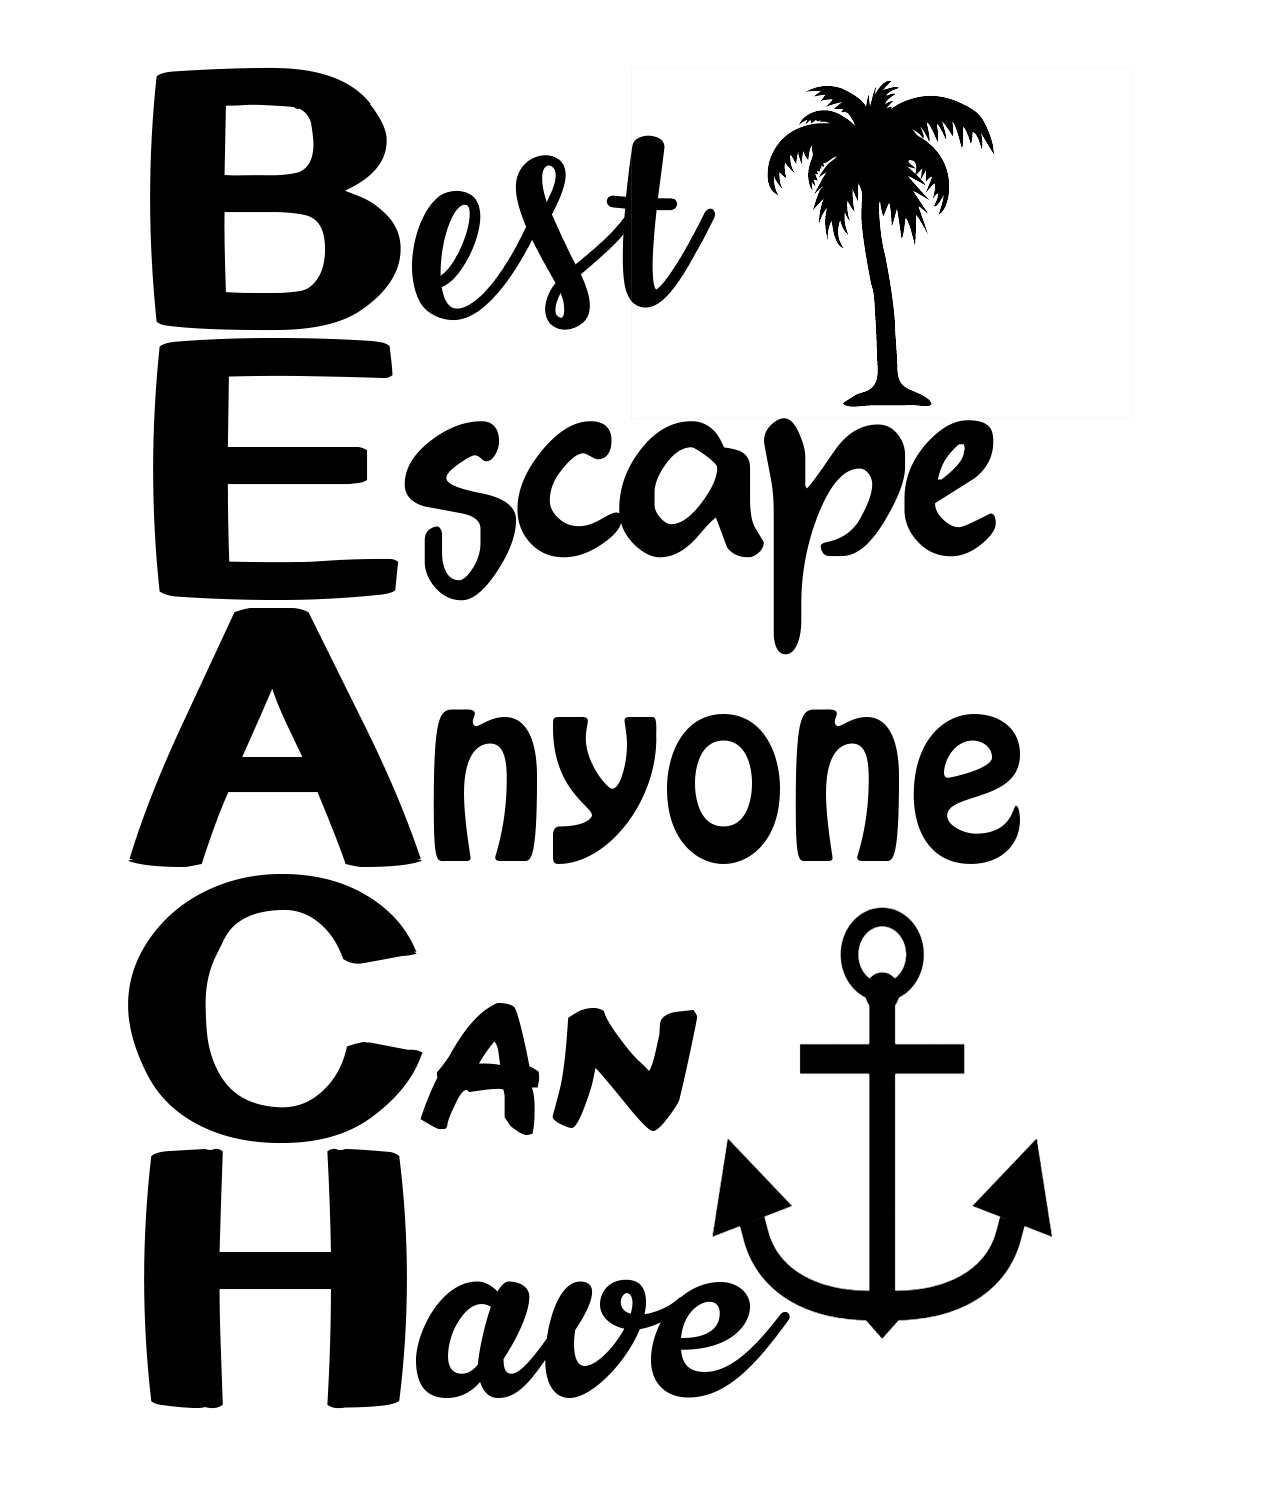 Download Free Beach SVG File | Beach quotes, Free beach, Beach signs